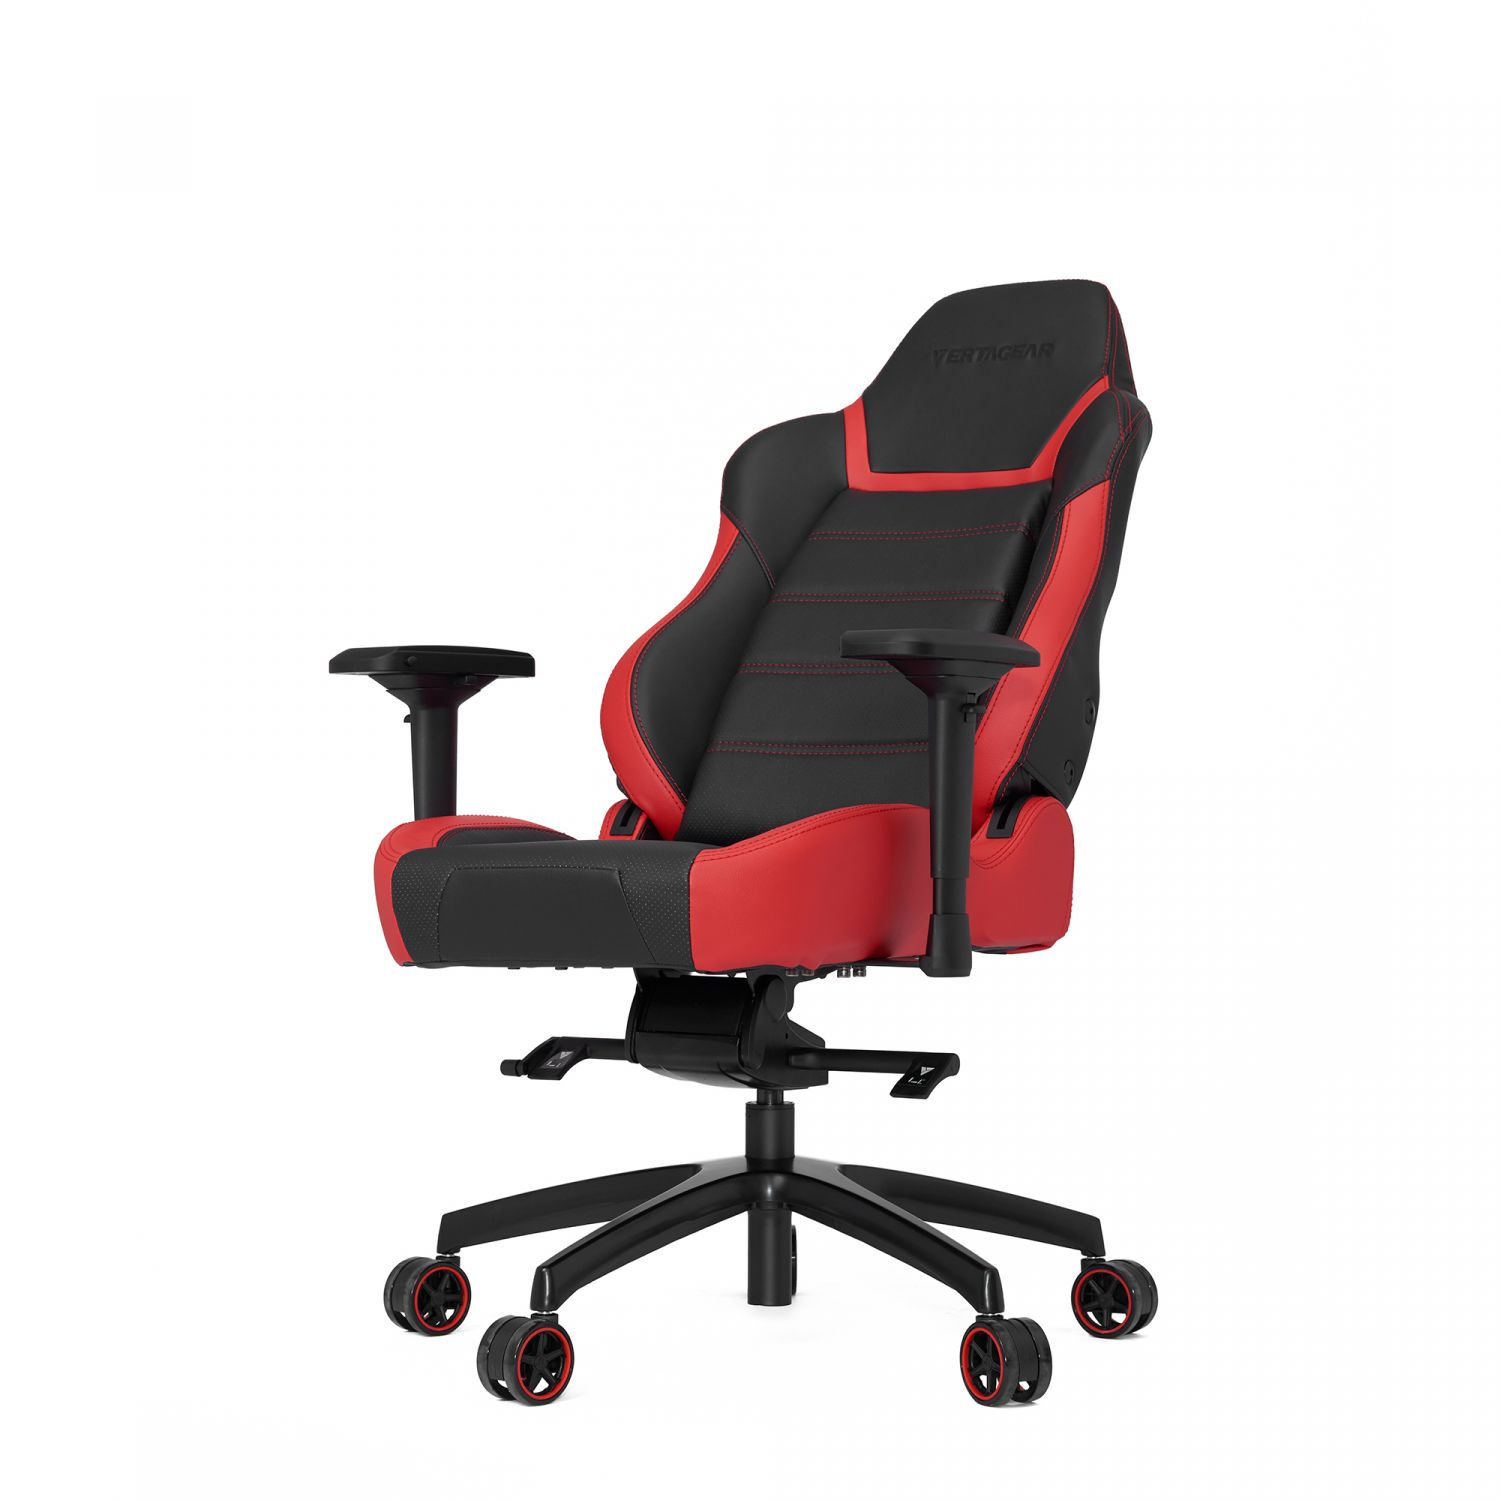 VERTAGEAR PL6000 GAMING CHAIR BLACK RED EDITION